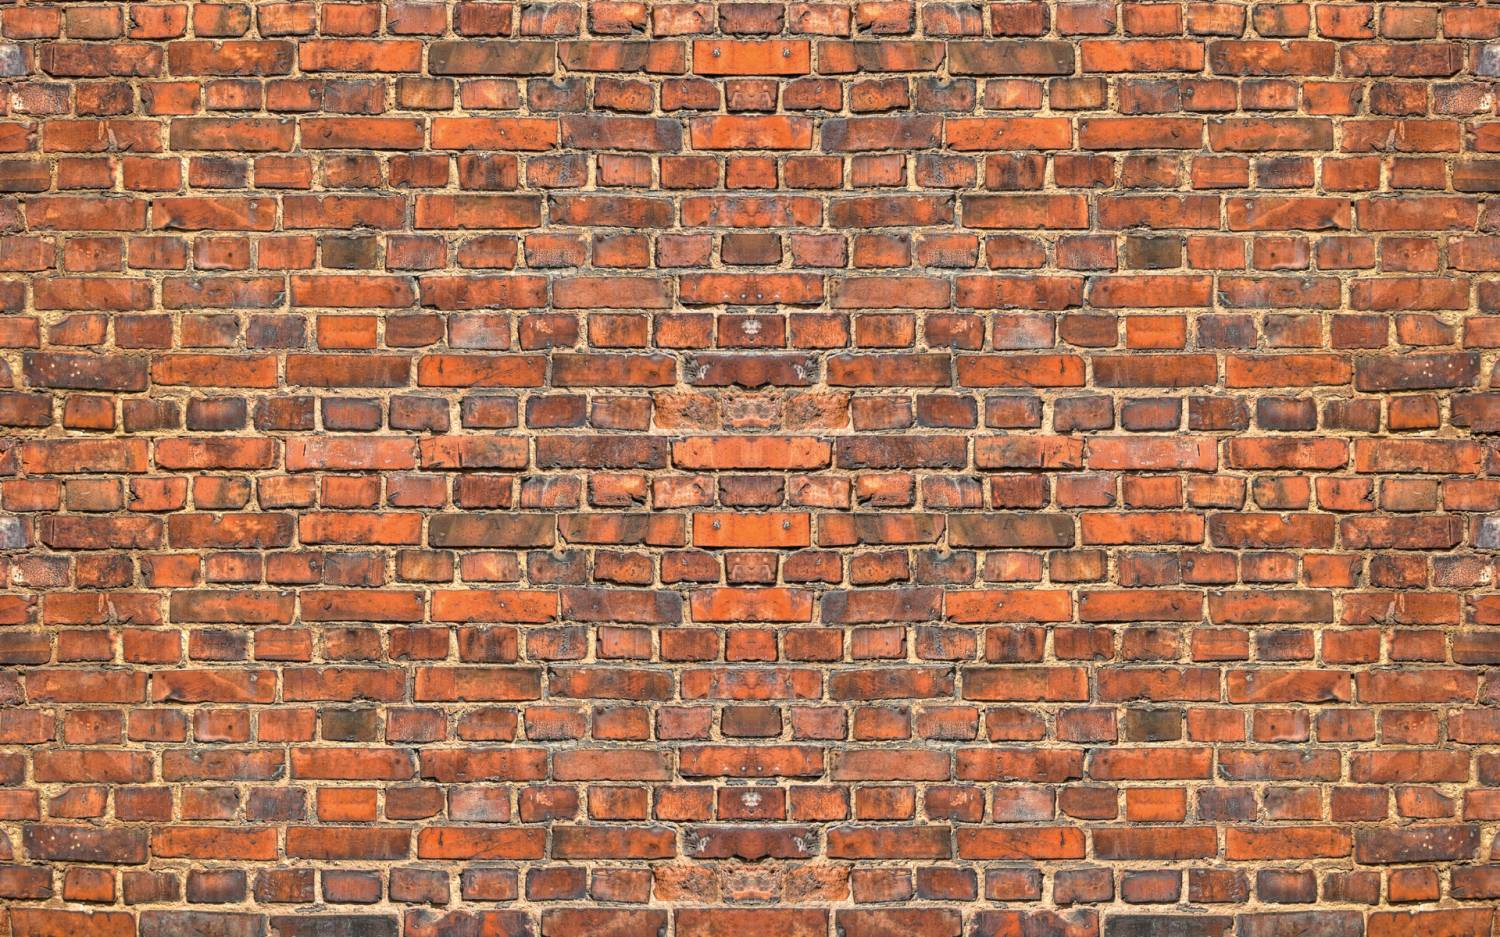 brick wall, texture, bricks, brick wall texture, background, download ...